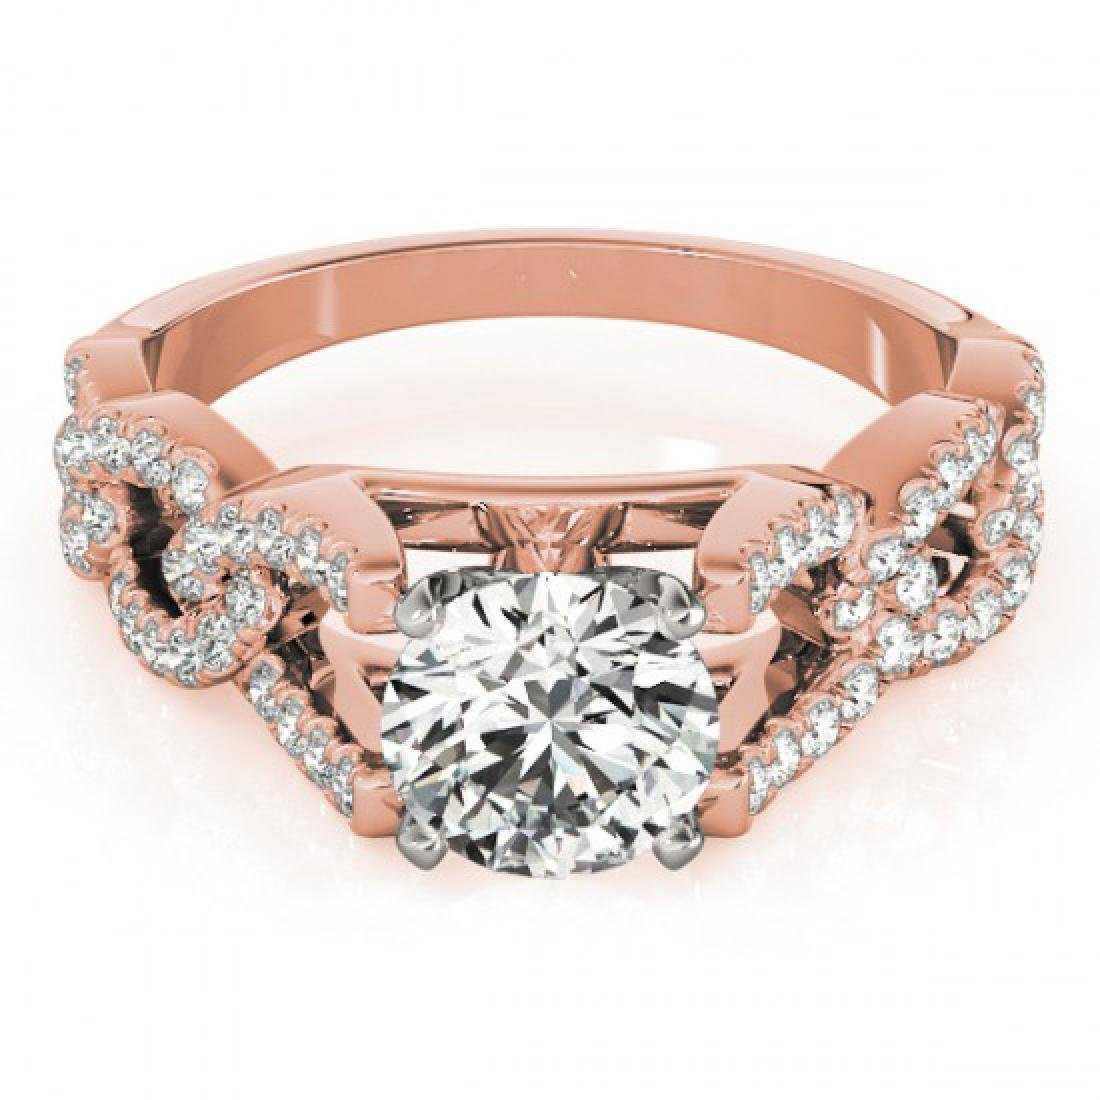 1.5 CTW Certified VS/SI Diamond Solitaire Ring 14K Rose